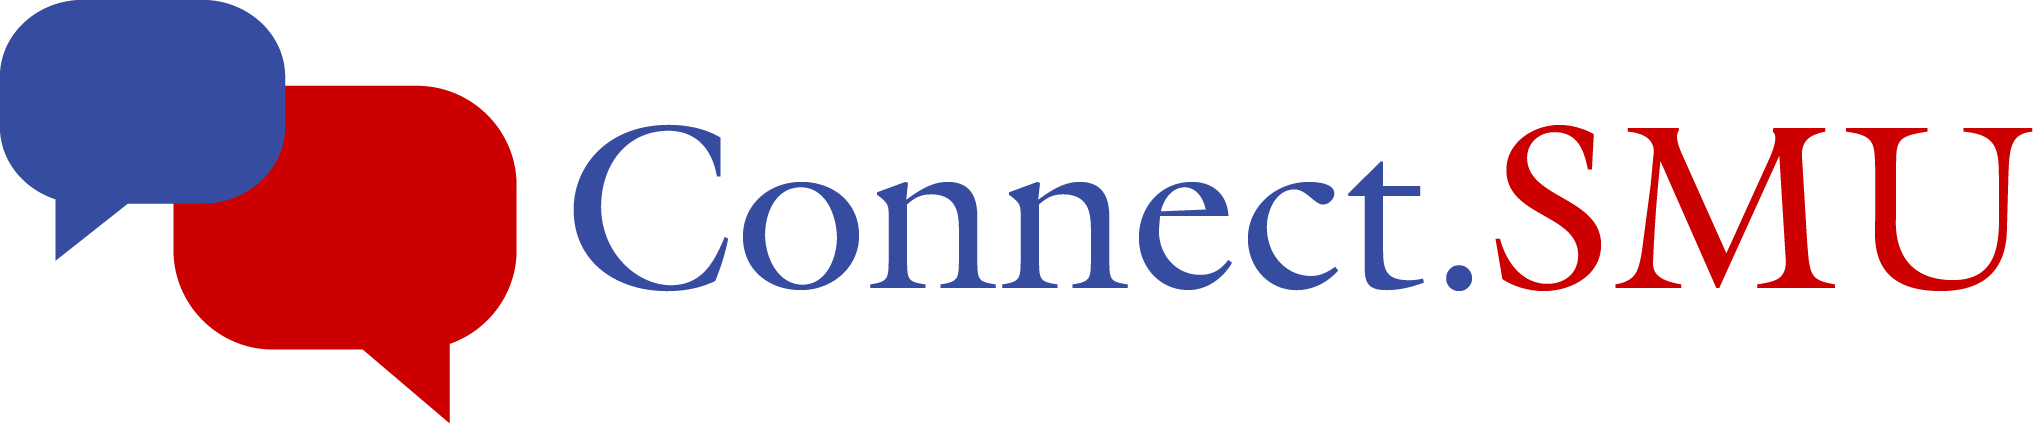 Connect.SMU Logo